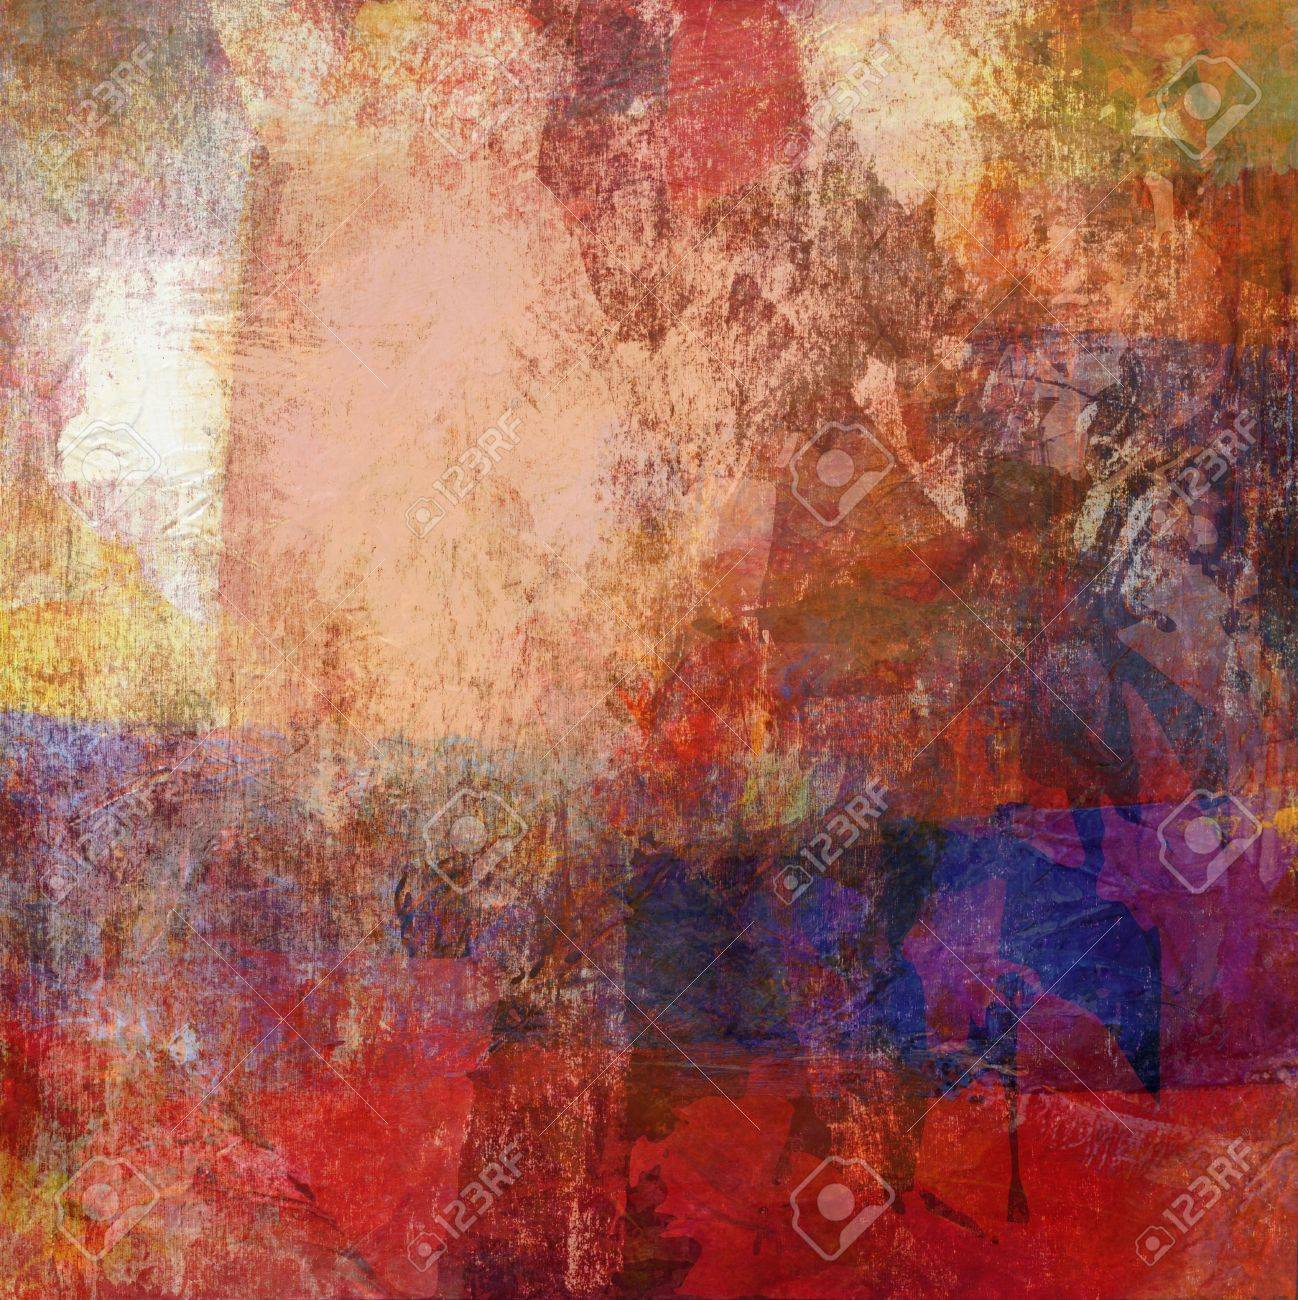 Analog Painting With Different Textures Added Digitally Stock Photo